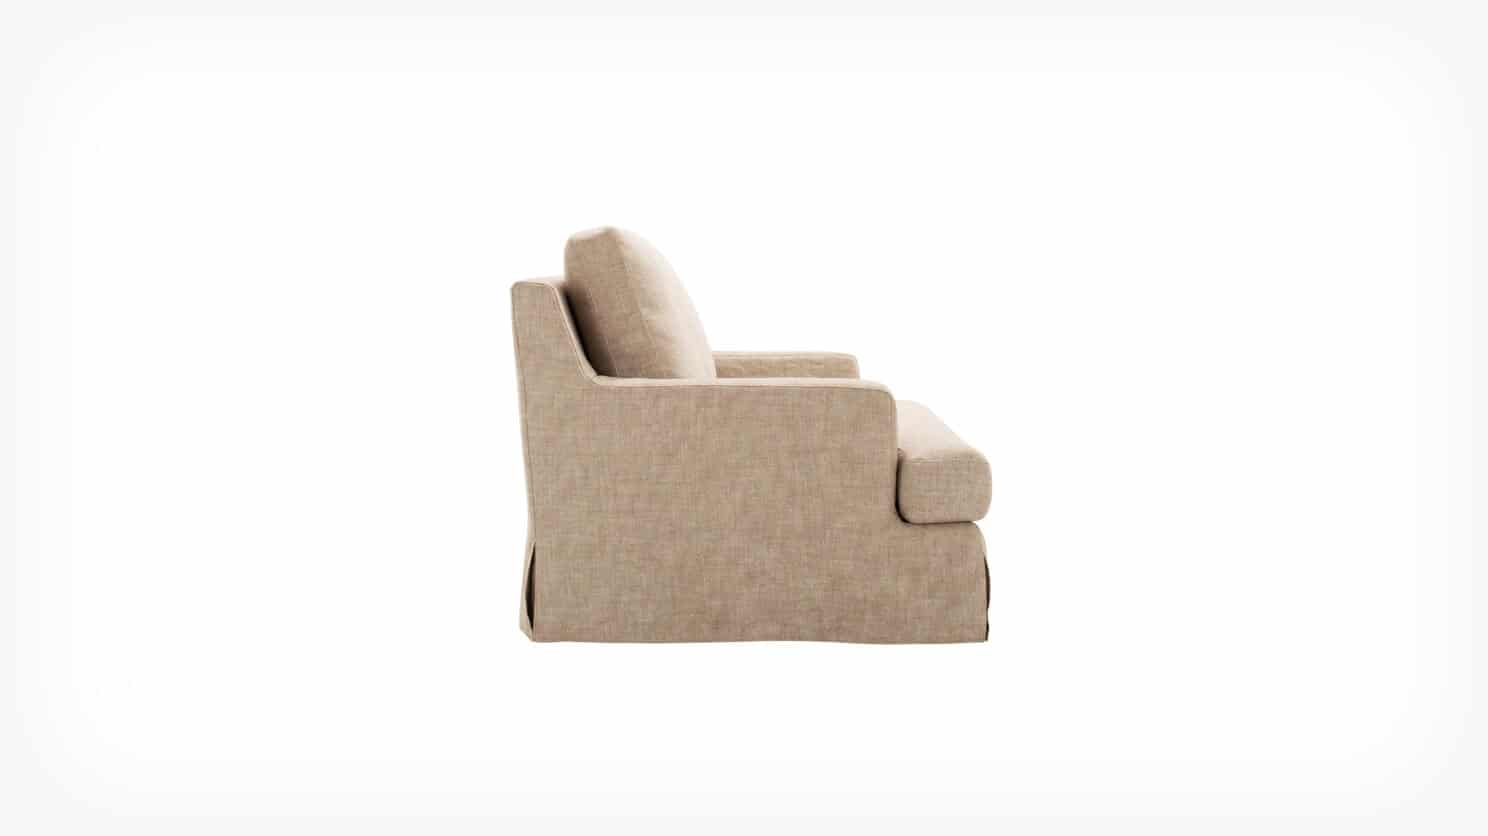 32113 03 03 loveseat slipcover blanche side view